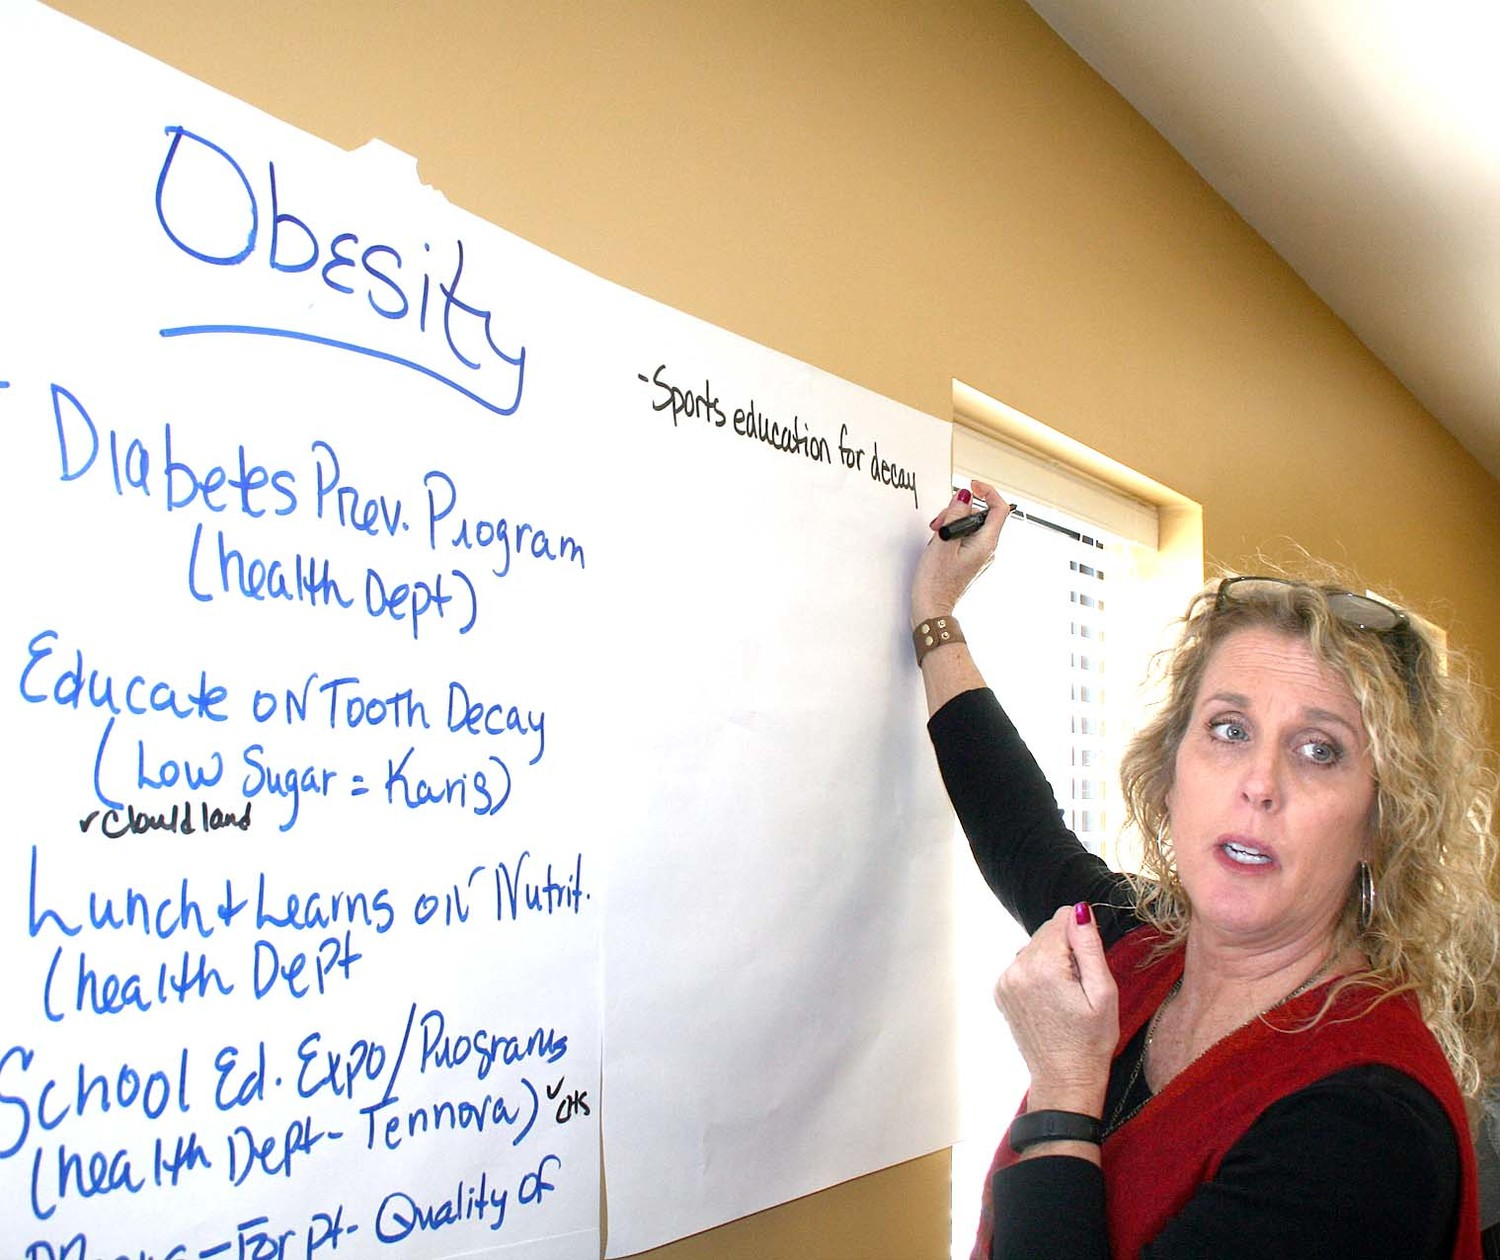 KAREN SLATER stands with an obesity posterboard as she writes down local programs intended to address this particular health issue. Other teams tackled different issues such as sexually transmitted infections, alcohol and substance abuse, smoking and physical inactivity.